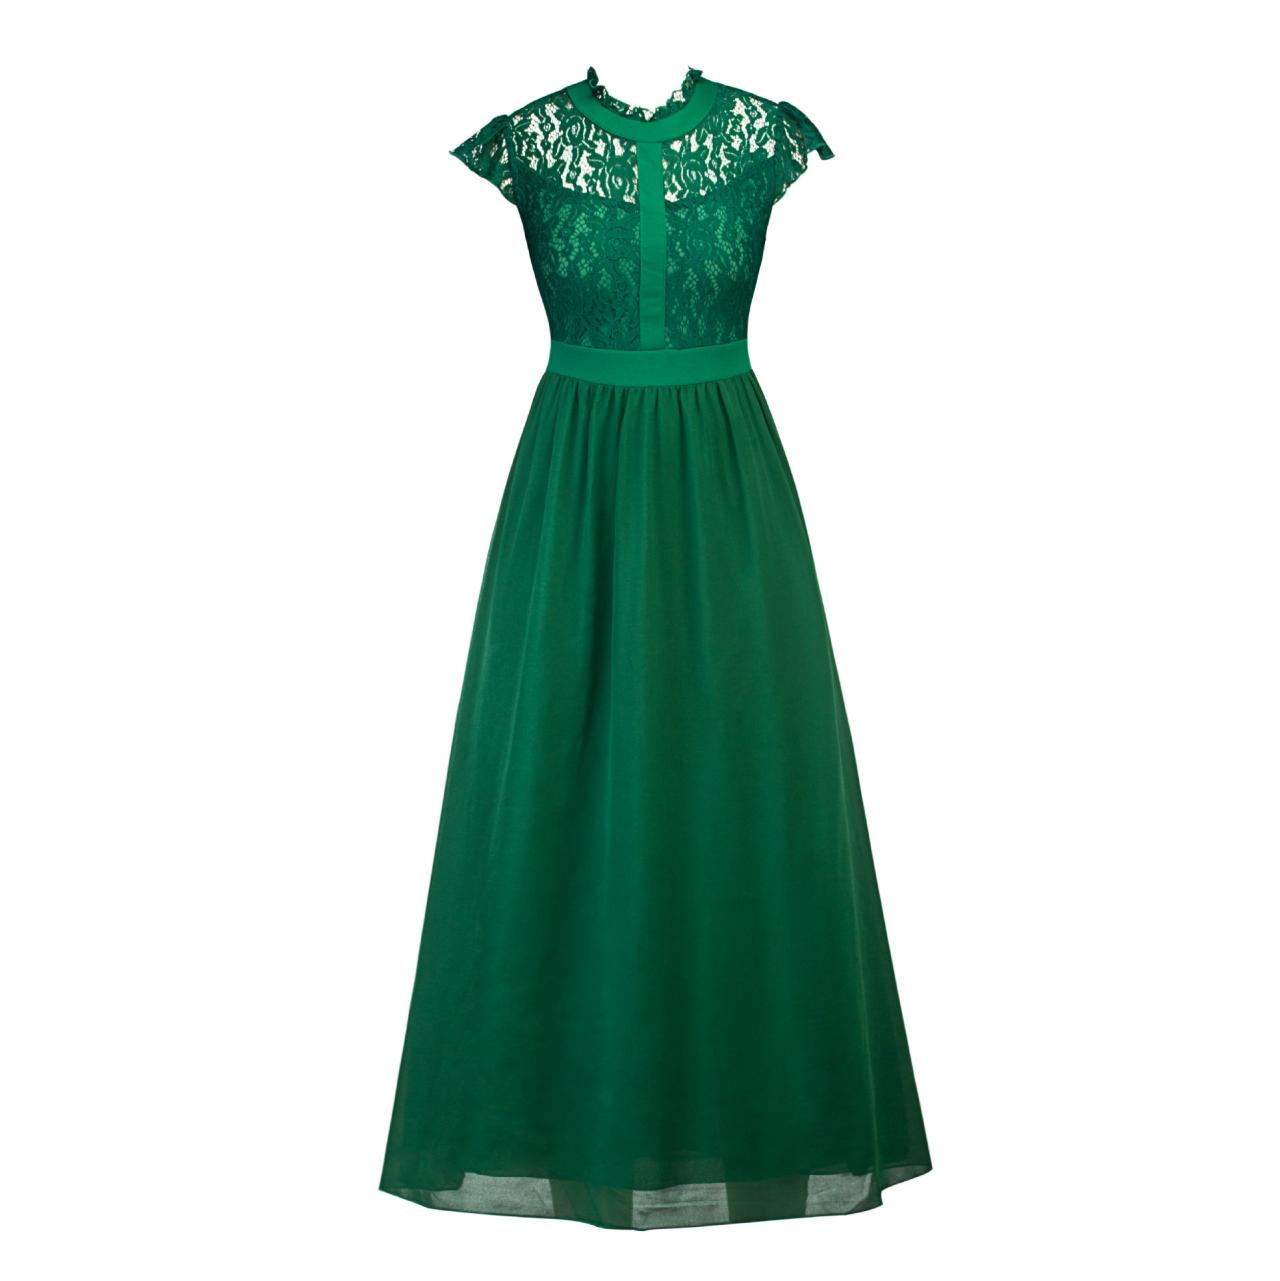 Green Lace Long Prom Dress Cheap Chiffon Wedding Evening Gowns High Neck Formal Prom Gowns ,Wedding Prom Gowns ,Plus Size Green Party Gowns